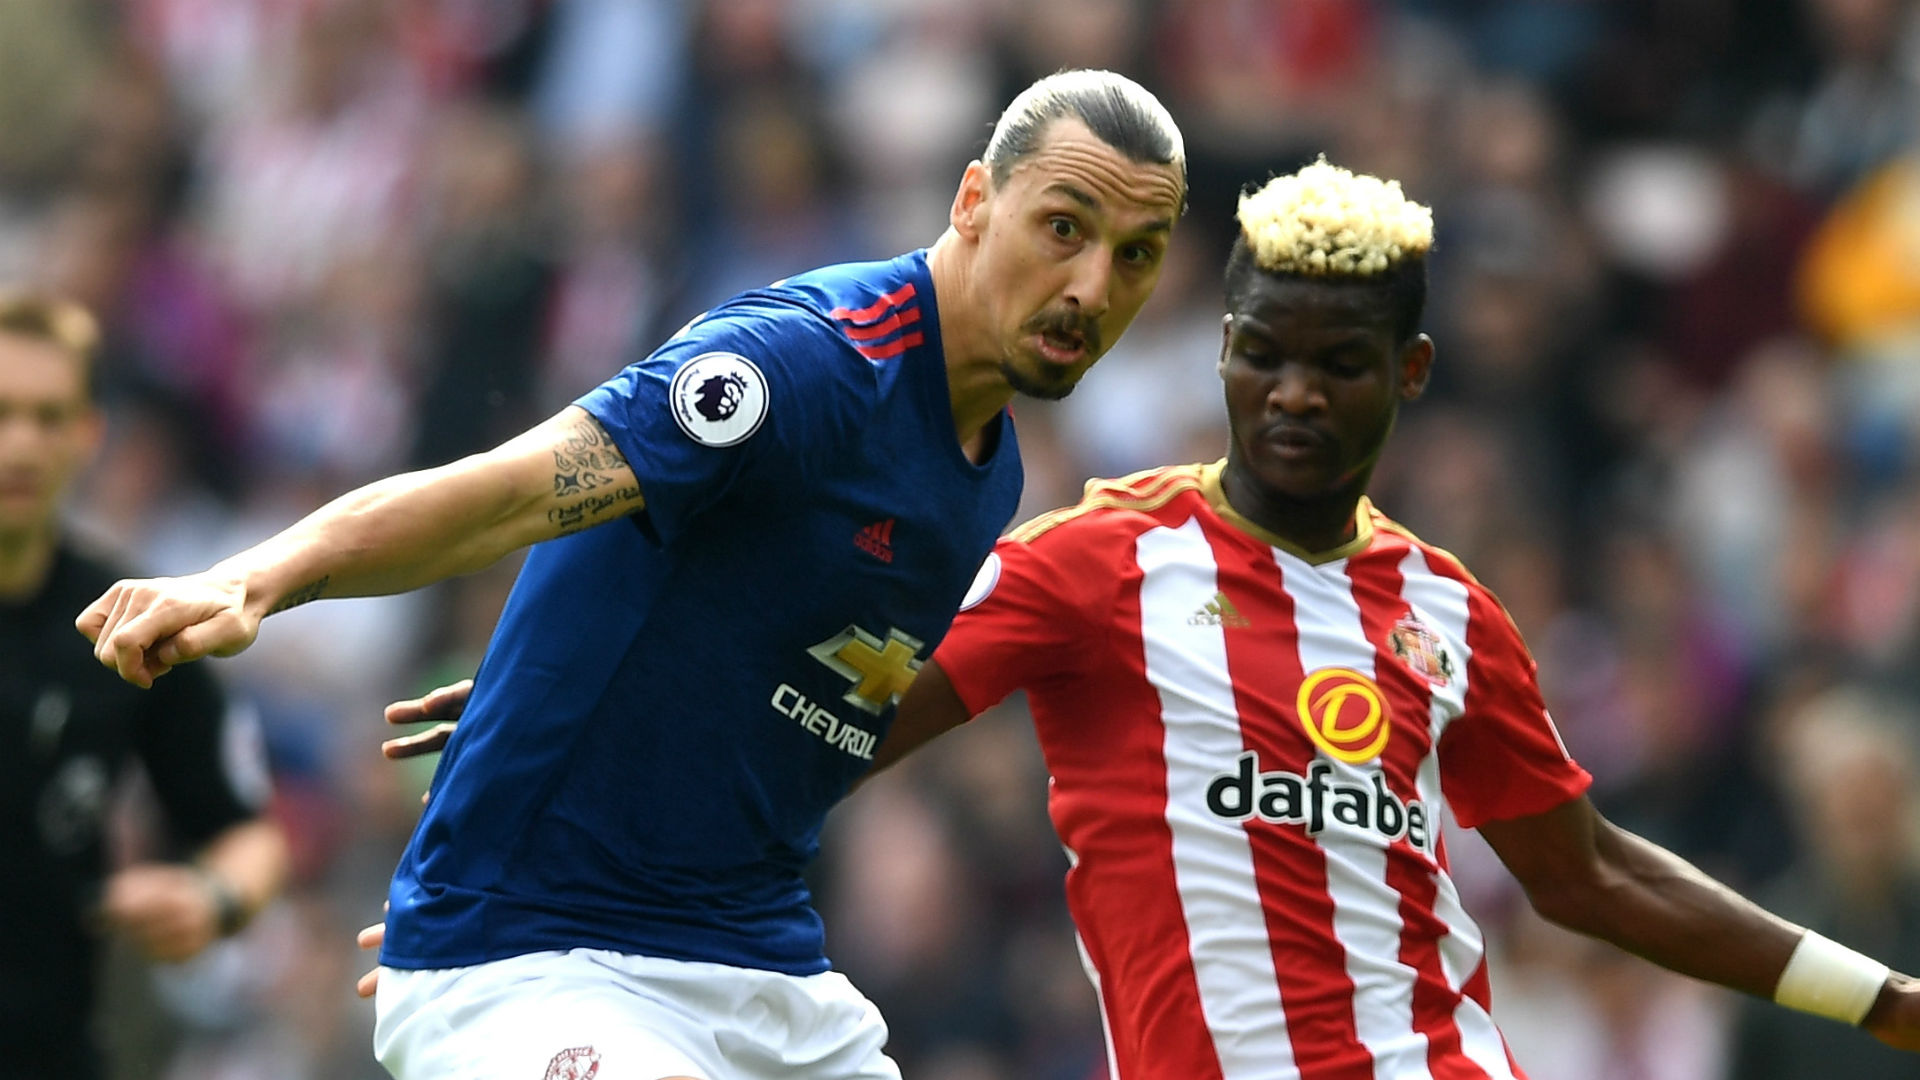 Ibra sparks United as Sunderland on brink